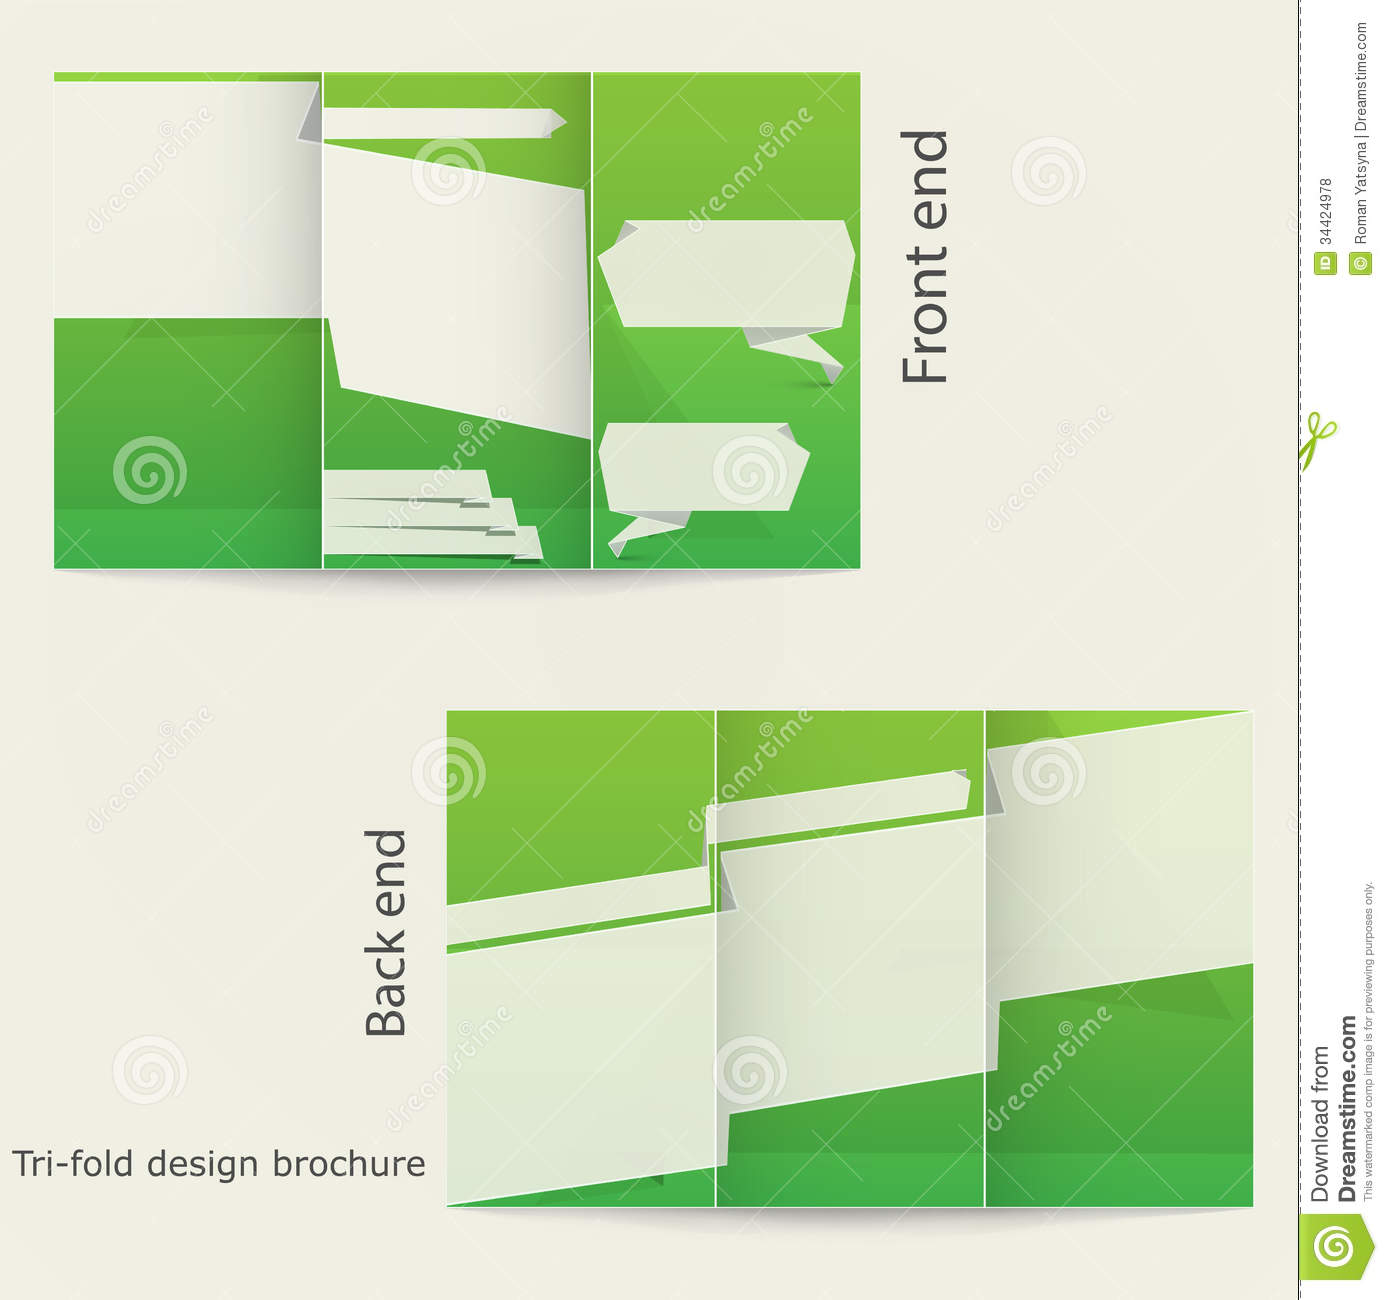 best brochure template - tri fold brochure design stock vector image of message